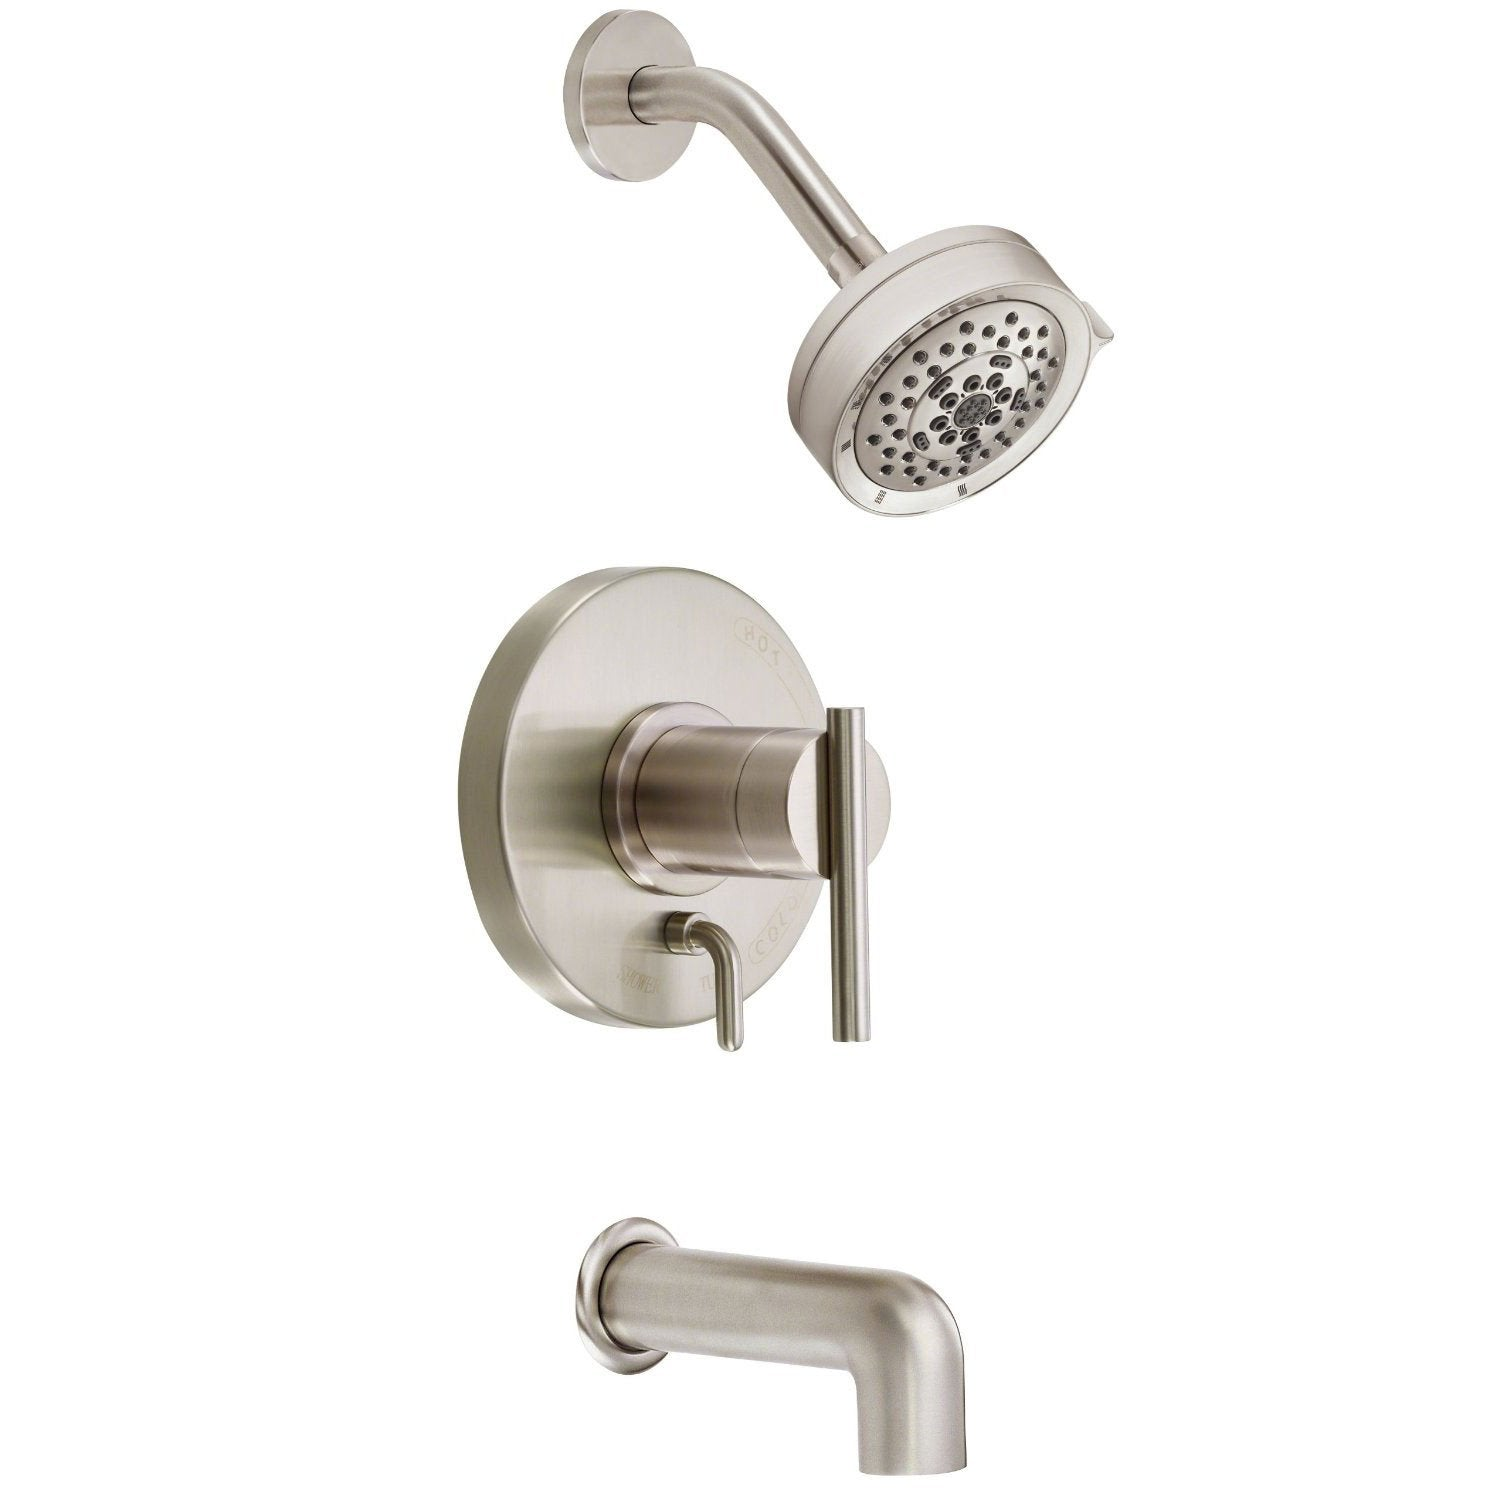 Danze Melrose Kitchen Faucet Design500388 Danze Parma Kitchen Faucet Danze D455158ss Parma